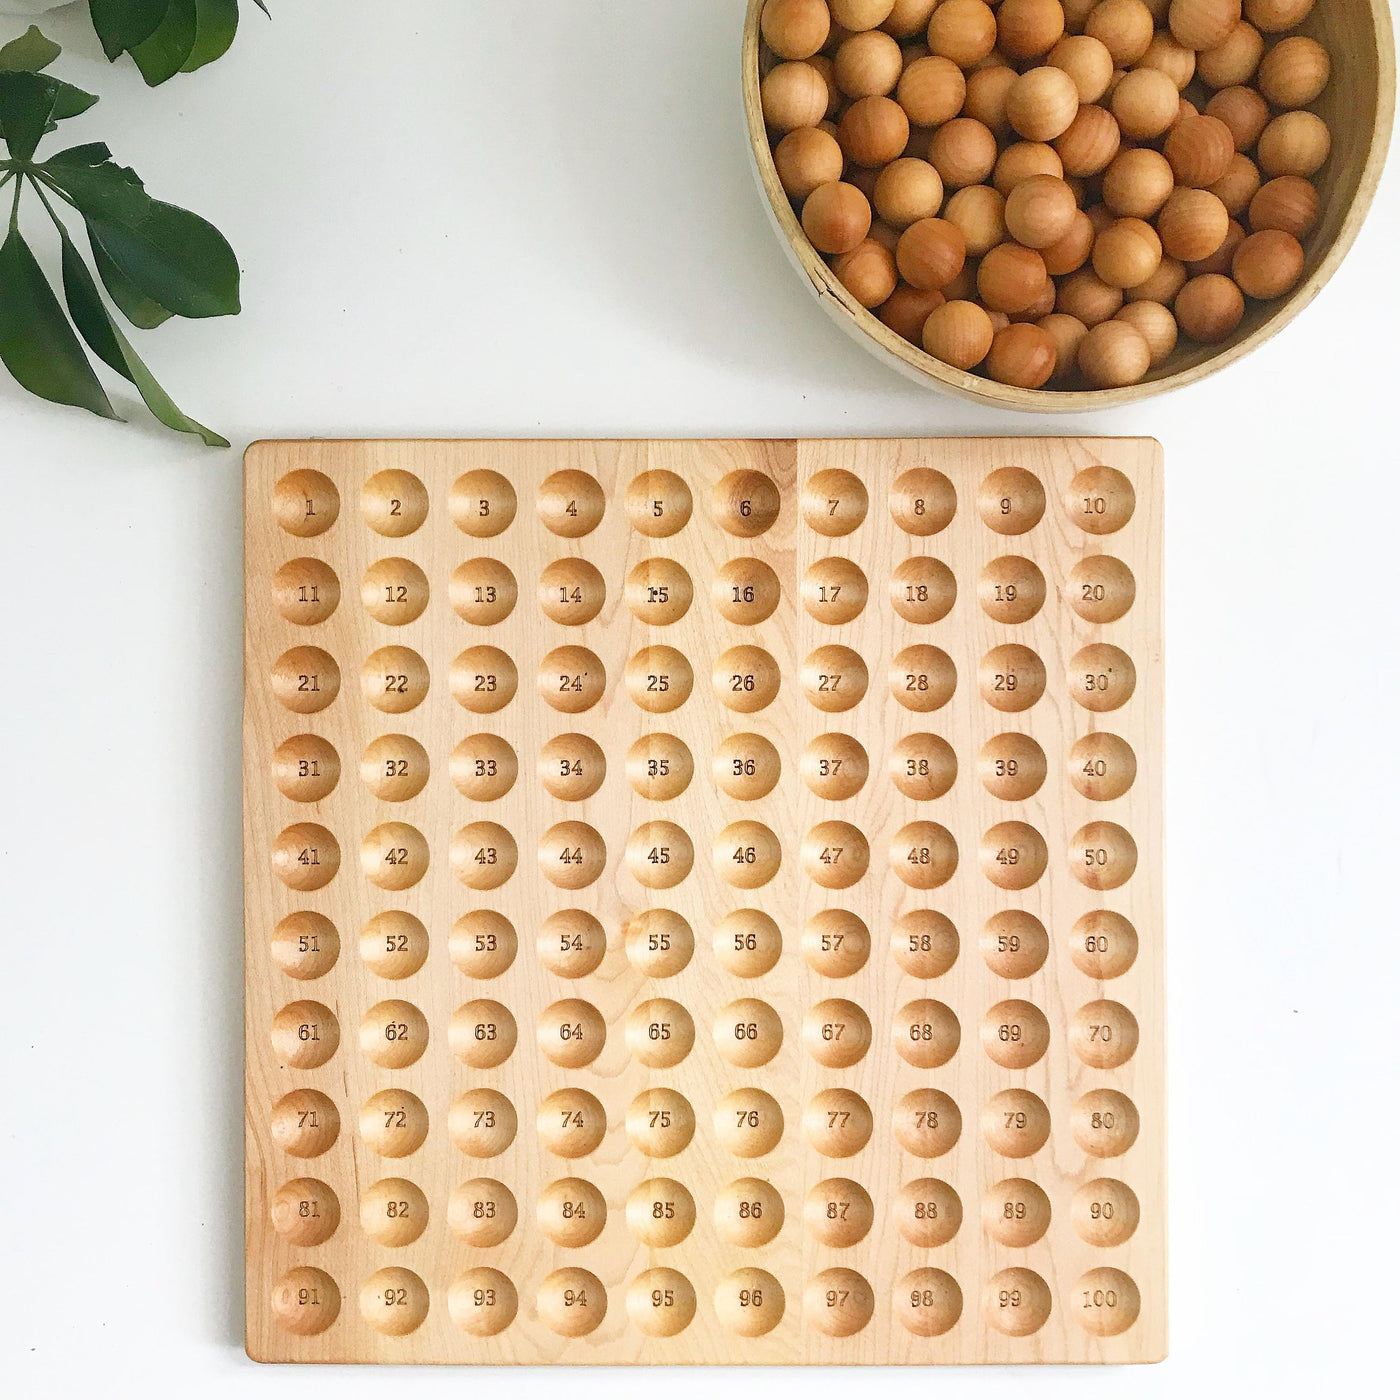 Hundred board - hundred frame - 100 board - counting board - Montessori toy - math manipulative